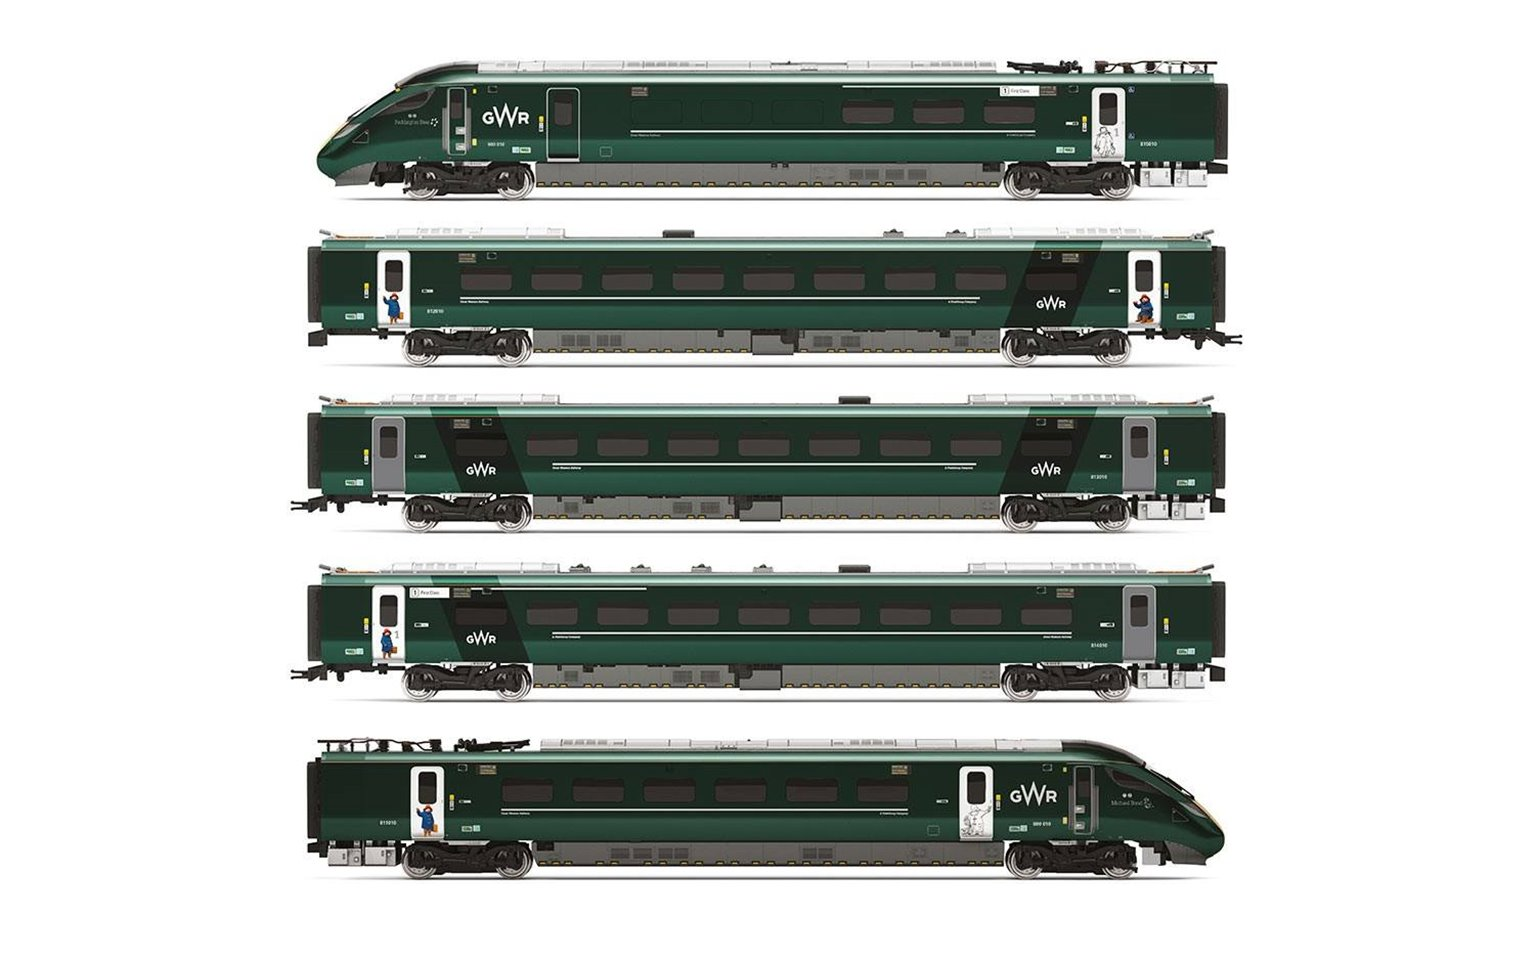 GWR Hitachi IEP Bi-Mode Class 800/0 'Paddington' Livery Five Car Set